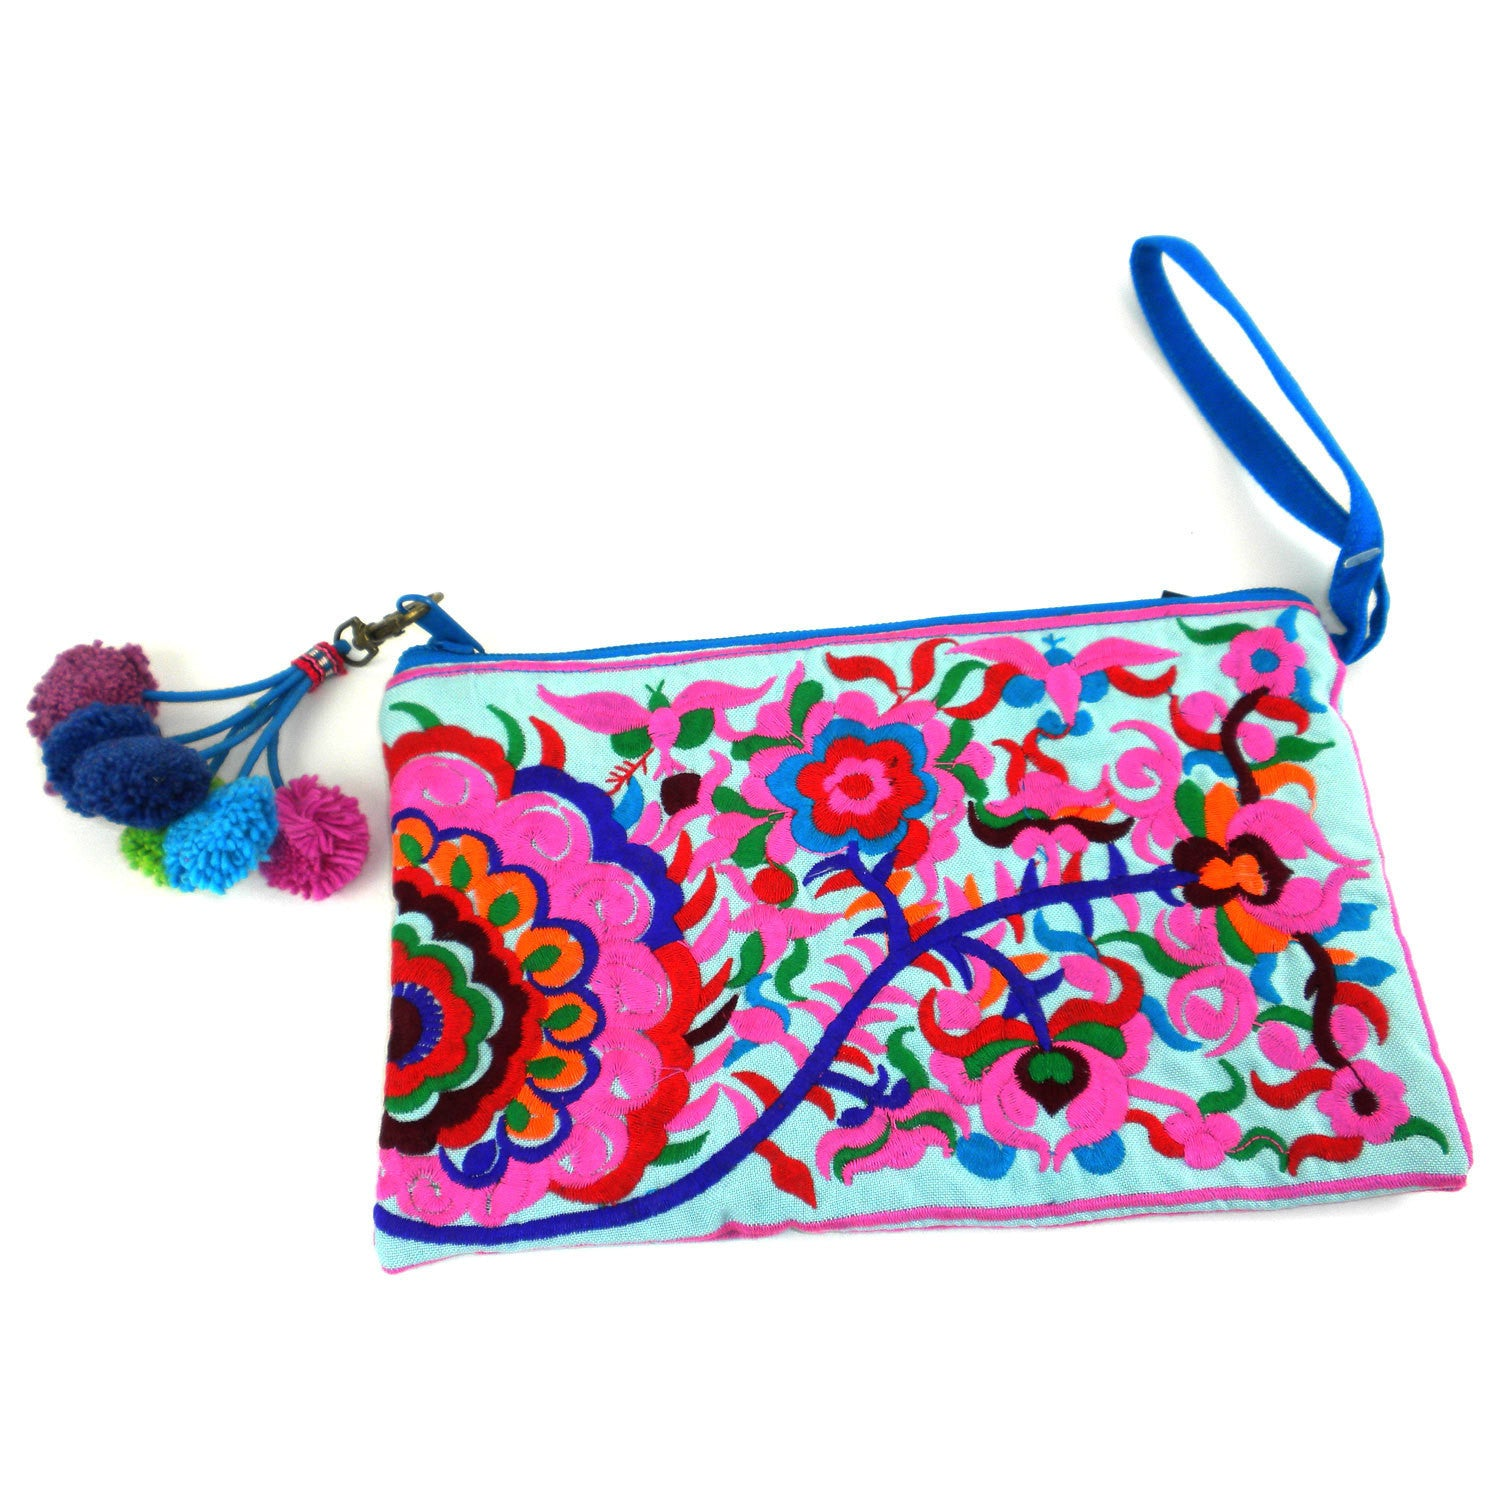 Double Sided Grab n' Go Pom Pom Clutch - Turquoise - Global Groove (P)